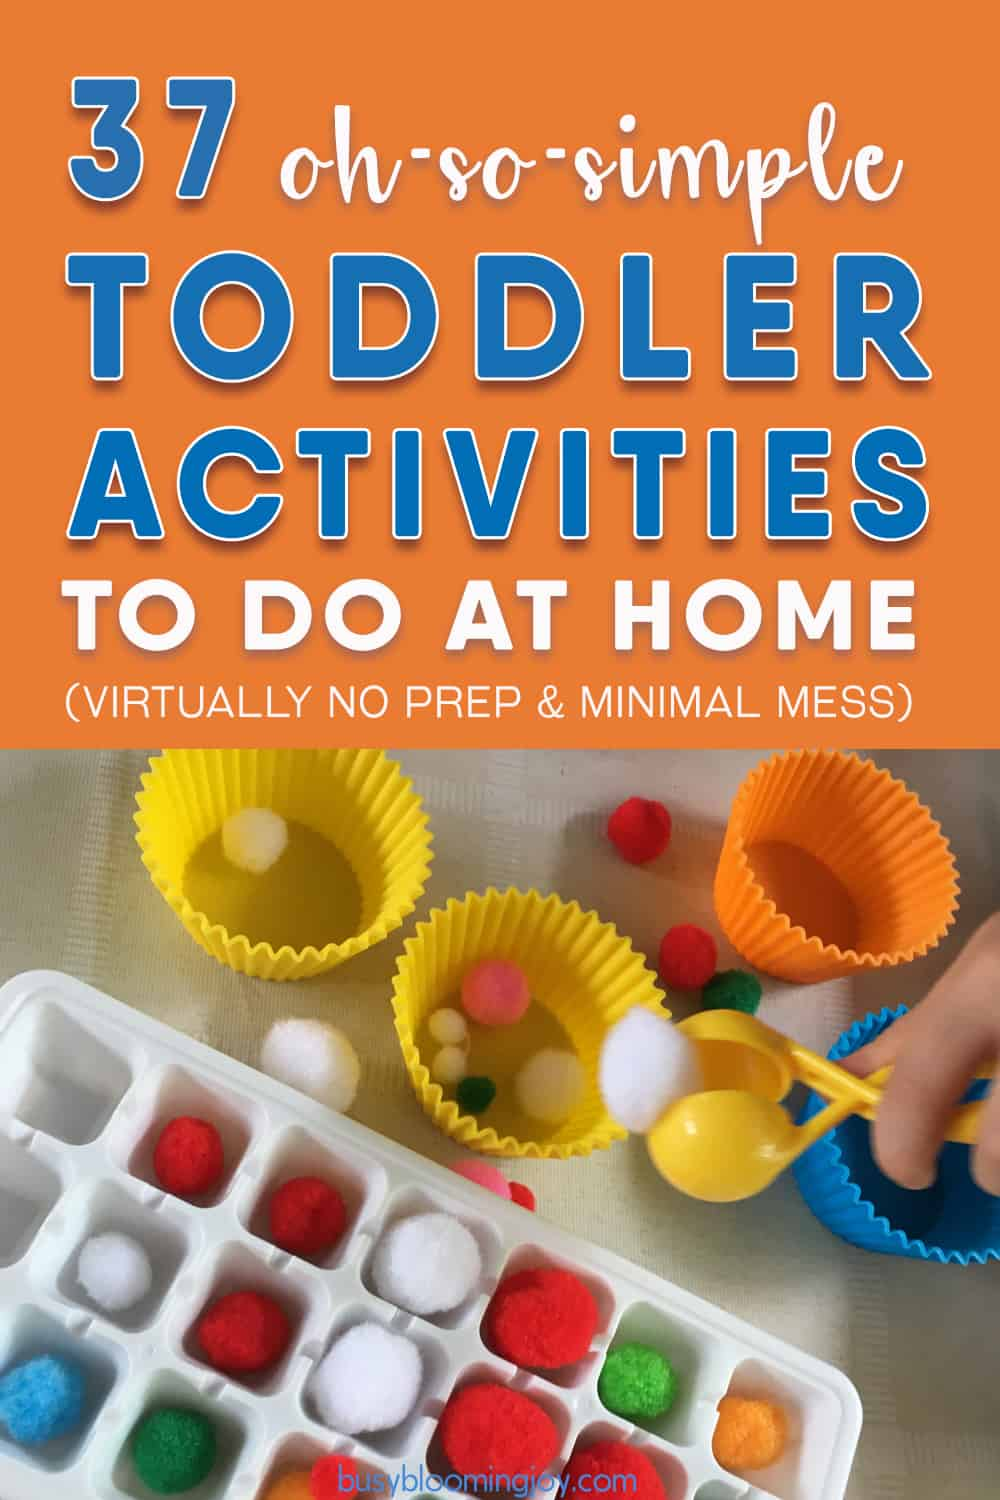 no prep easy toddler activities to do at home - pin image